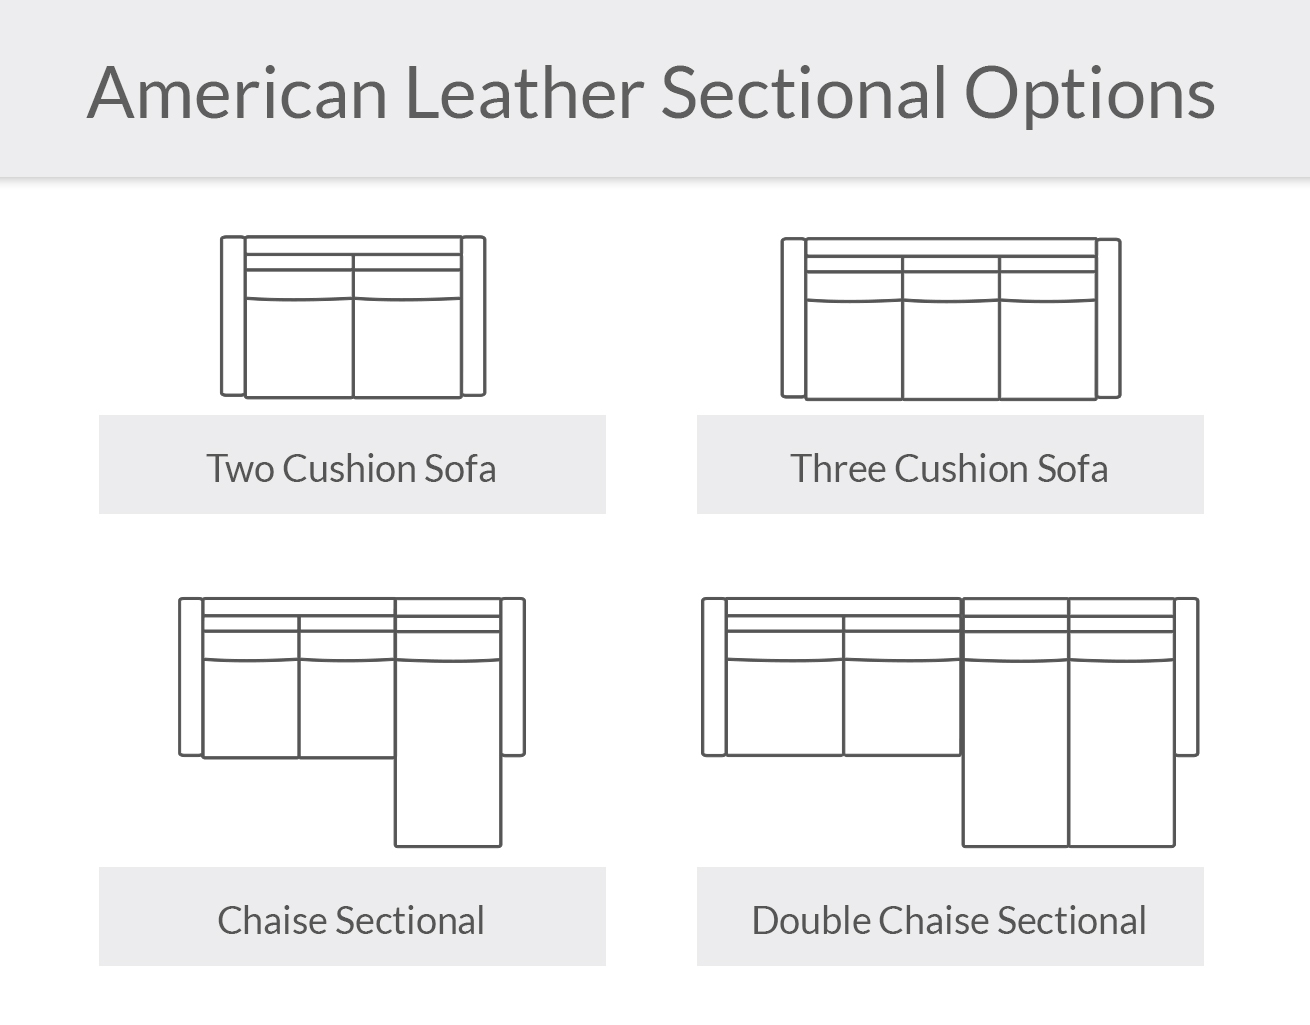 American Leather Sectional Options